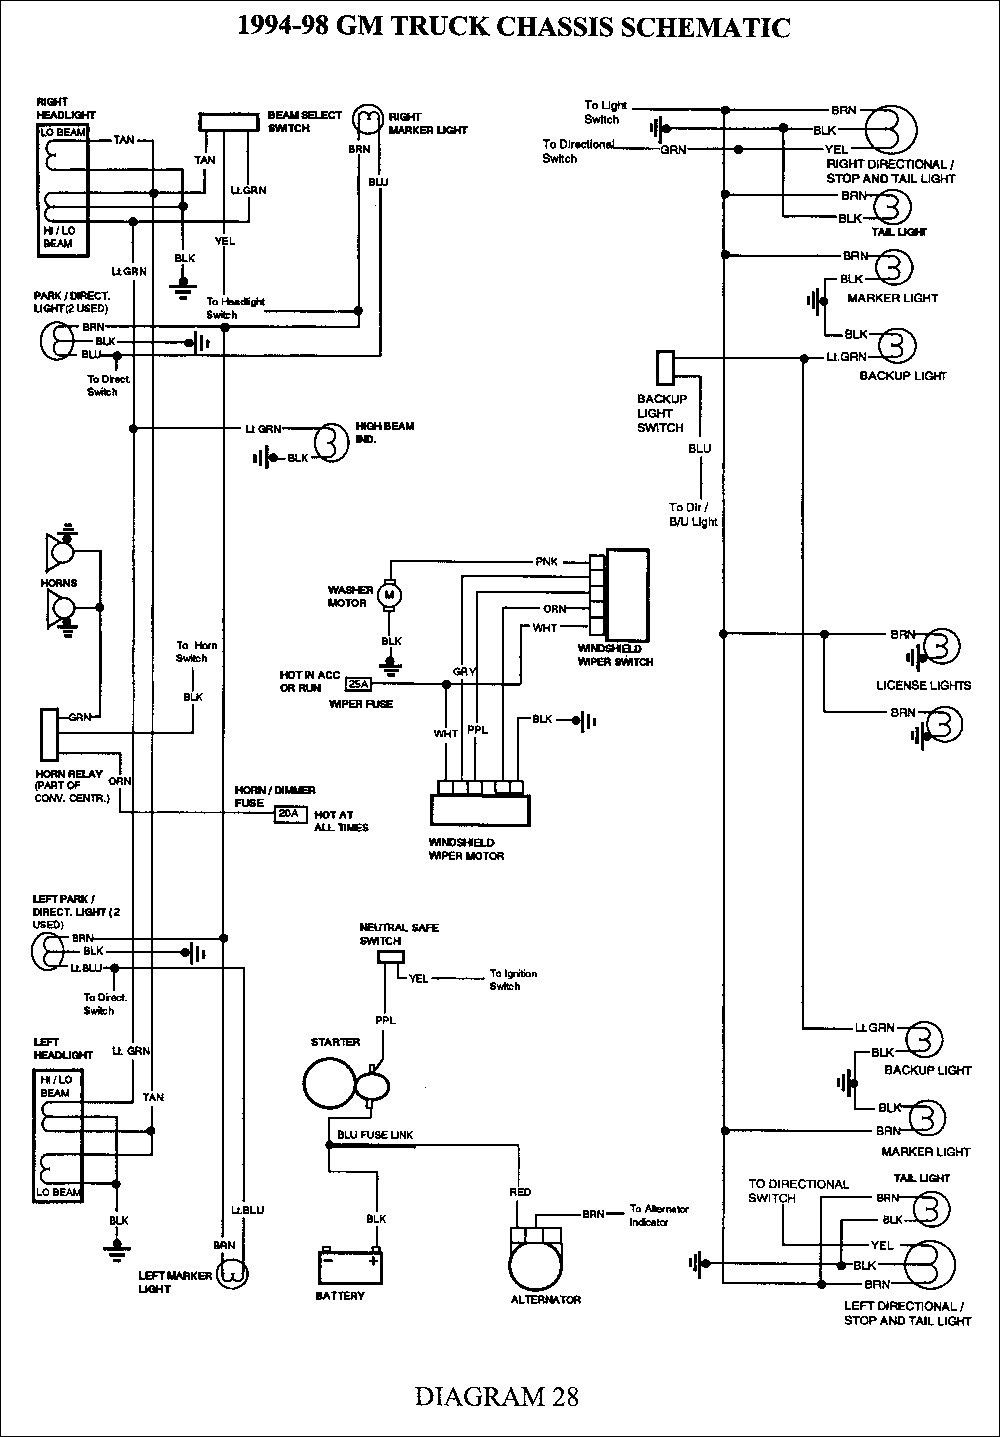 2005 Chevrolet Wiring Diagram - Wiring Diagram Dash on equinox blower motor wiring diagram, chevy equinox motor diagram, 2005 chevy equinox engine, 2005 chevy equinox radio, 2006 chevrolet equinox part diagram, 2005 chevy equinox power steering, 2005 chevy equinox firing order, 2006 equinox wiring diagram, 2005 chevy equinox headlight bulb replacement, 2005 chevy equinox transmission problems, 2005 chevy equinox frame, 2006 chevy equinox engine diagram, 2005 equinox engine diagram, 2005 chevy equinox oil pump, 2005 chevy equinox horn, 2005 chevy equinox parts location, 2005 chevy equinox dash lights, chevy equinox parts diagram, 2005 equinox radio wiring diagram, 2005 chevy equinox control panel,